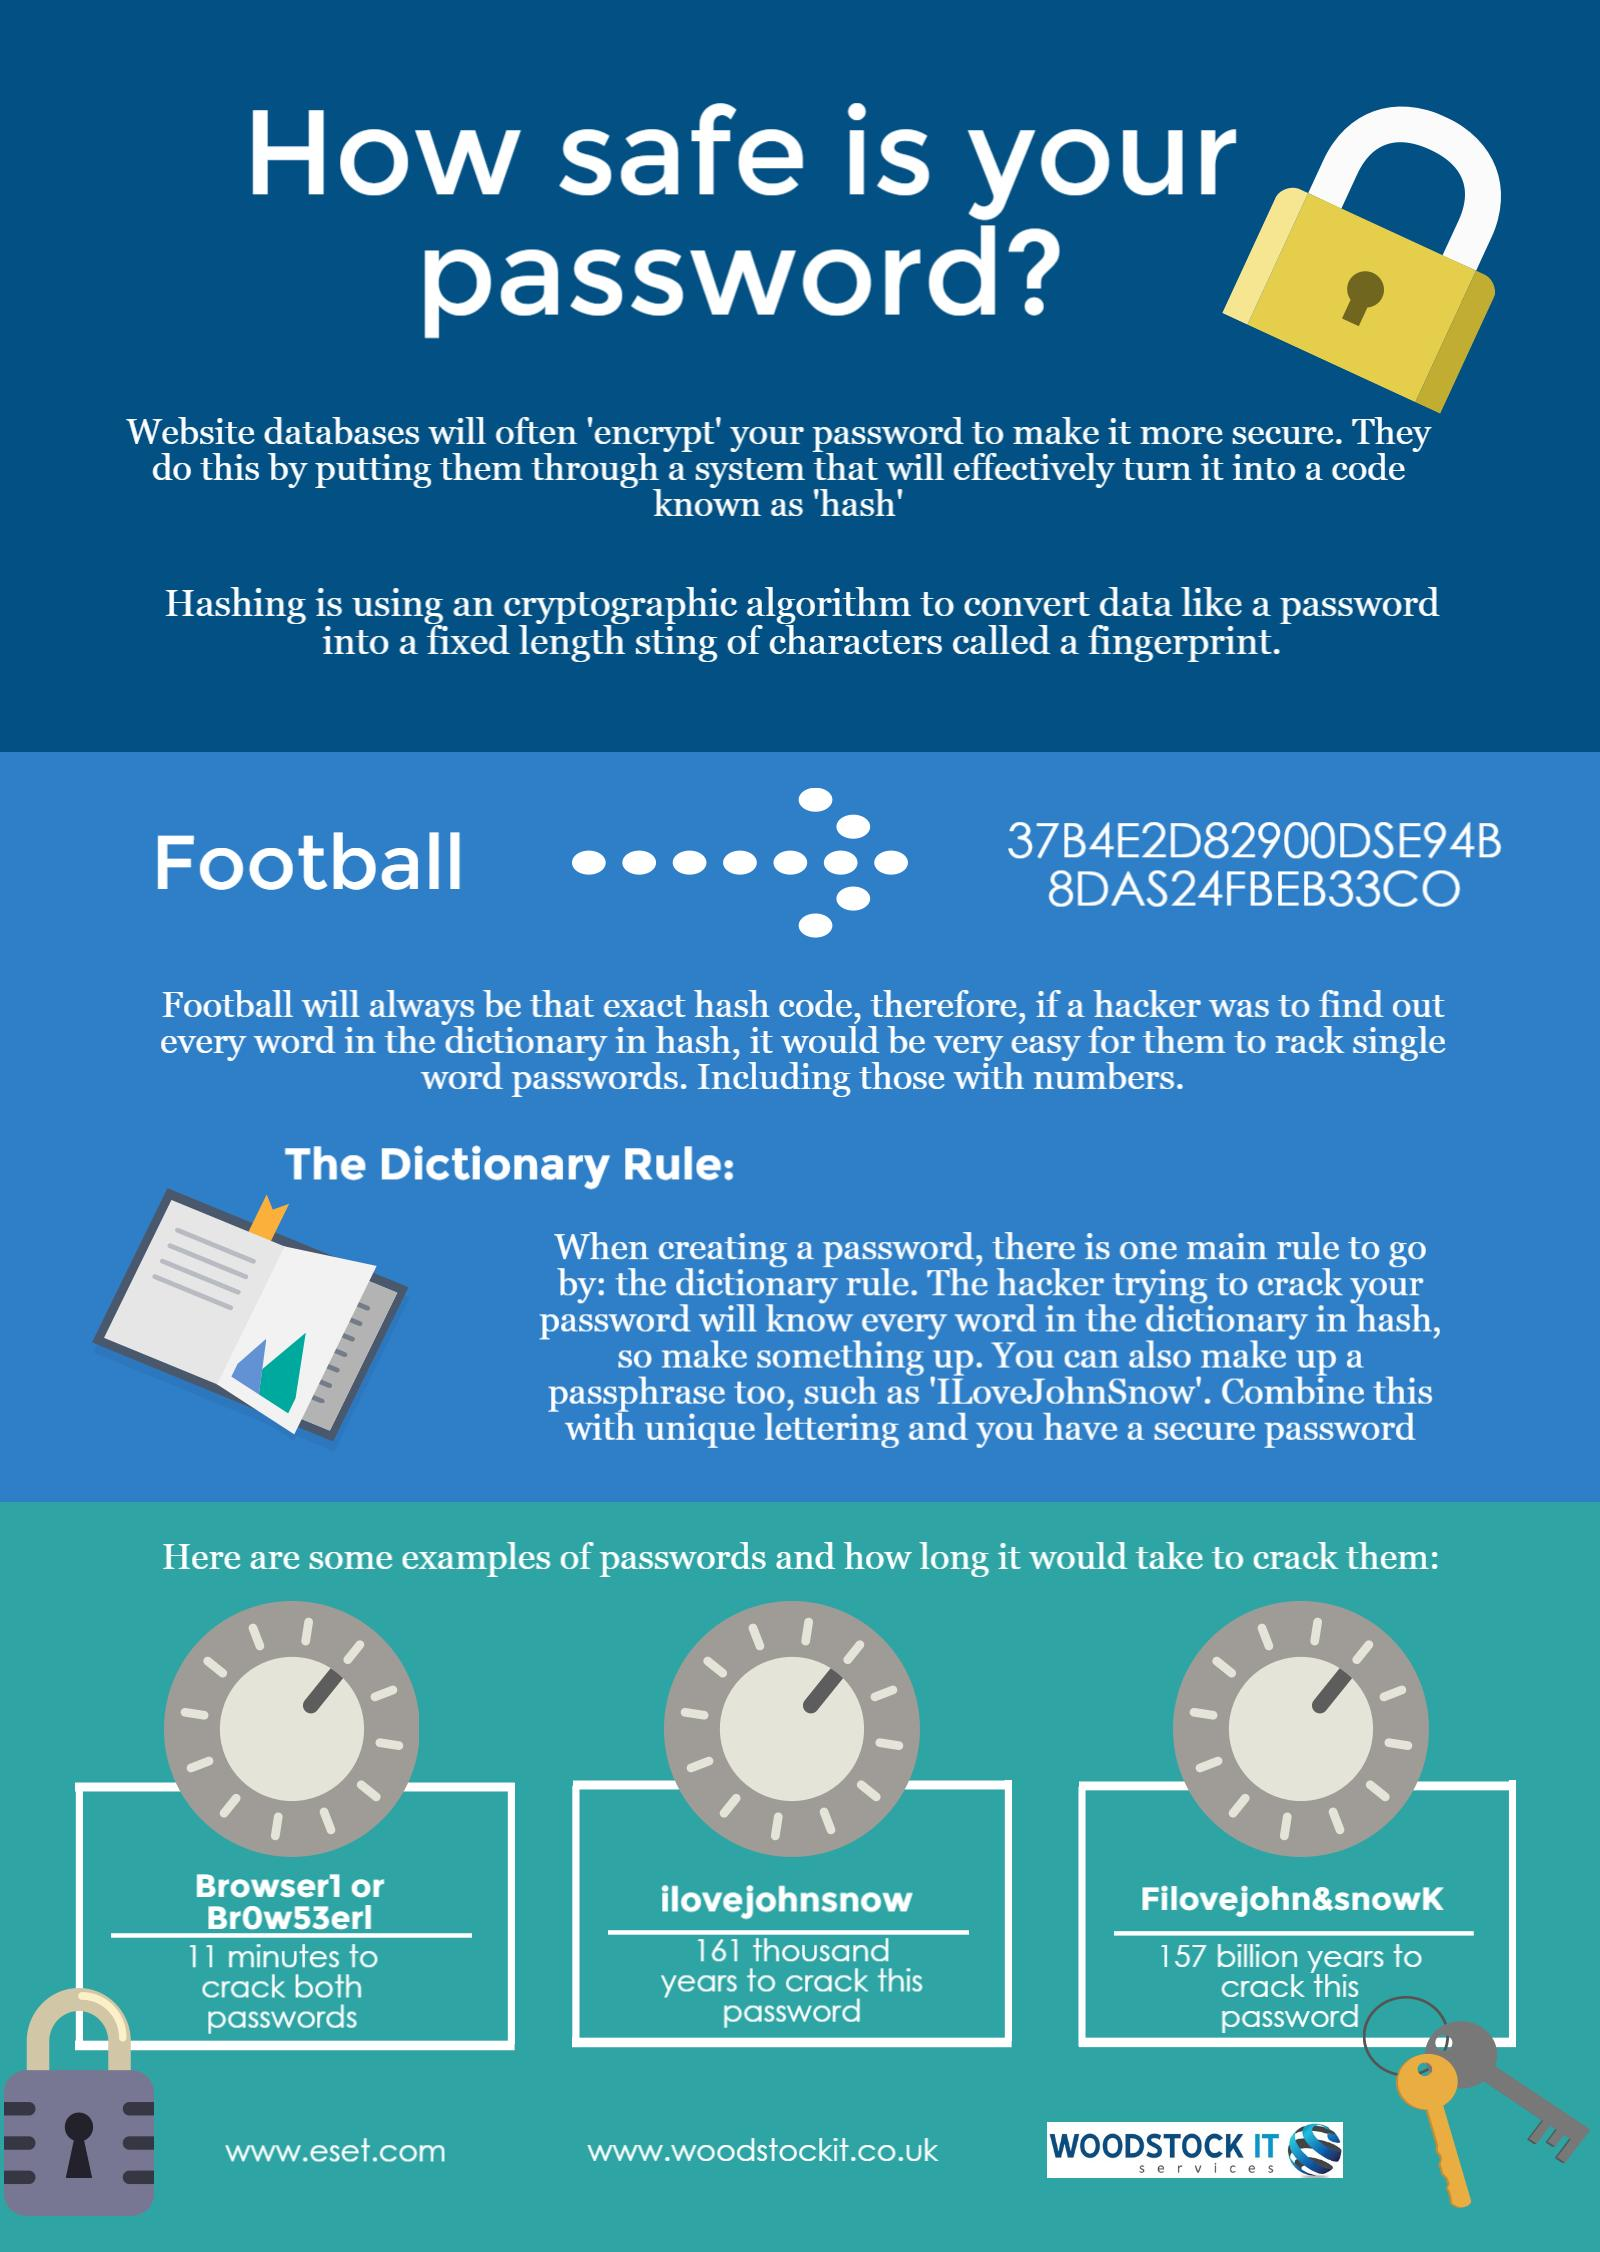 how safe is your password infographic